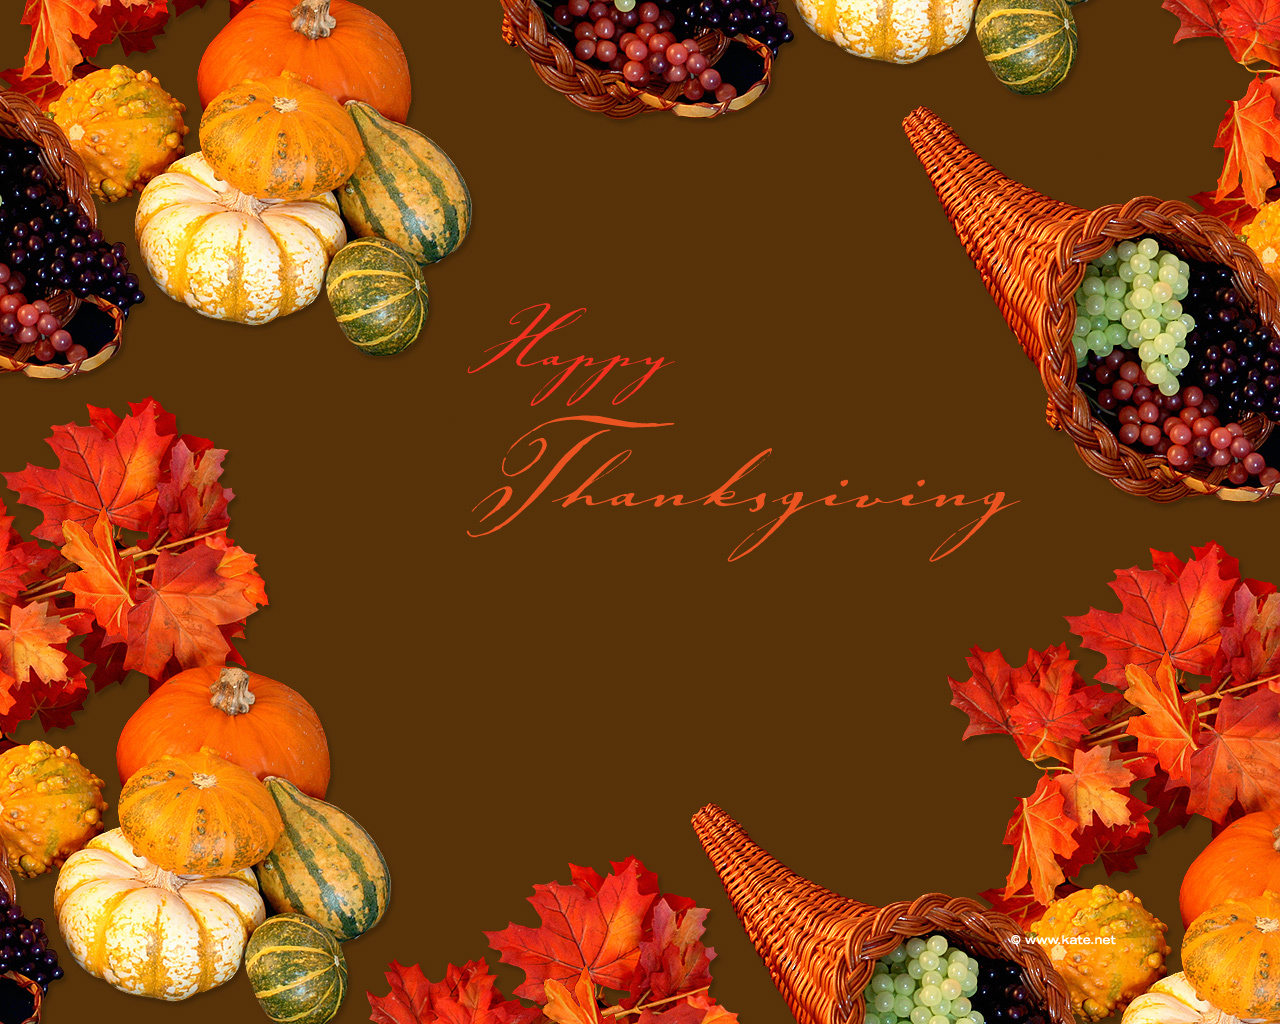 free wallpicz: Wallpaper Desktop Thanksgiving